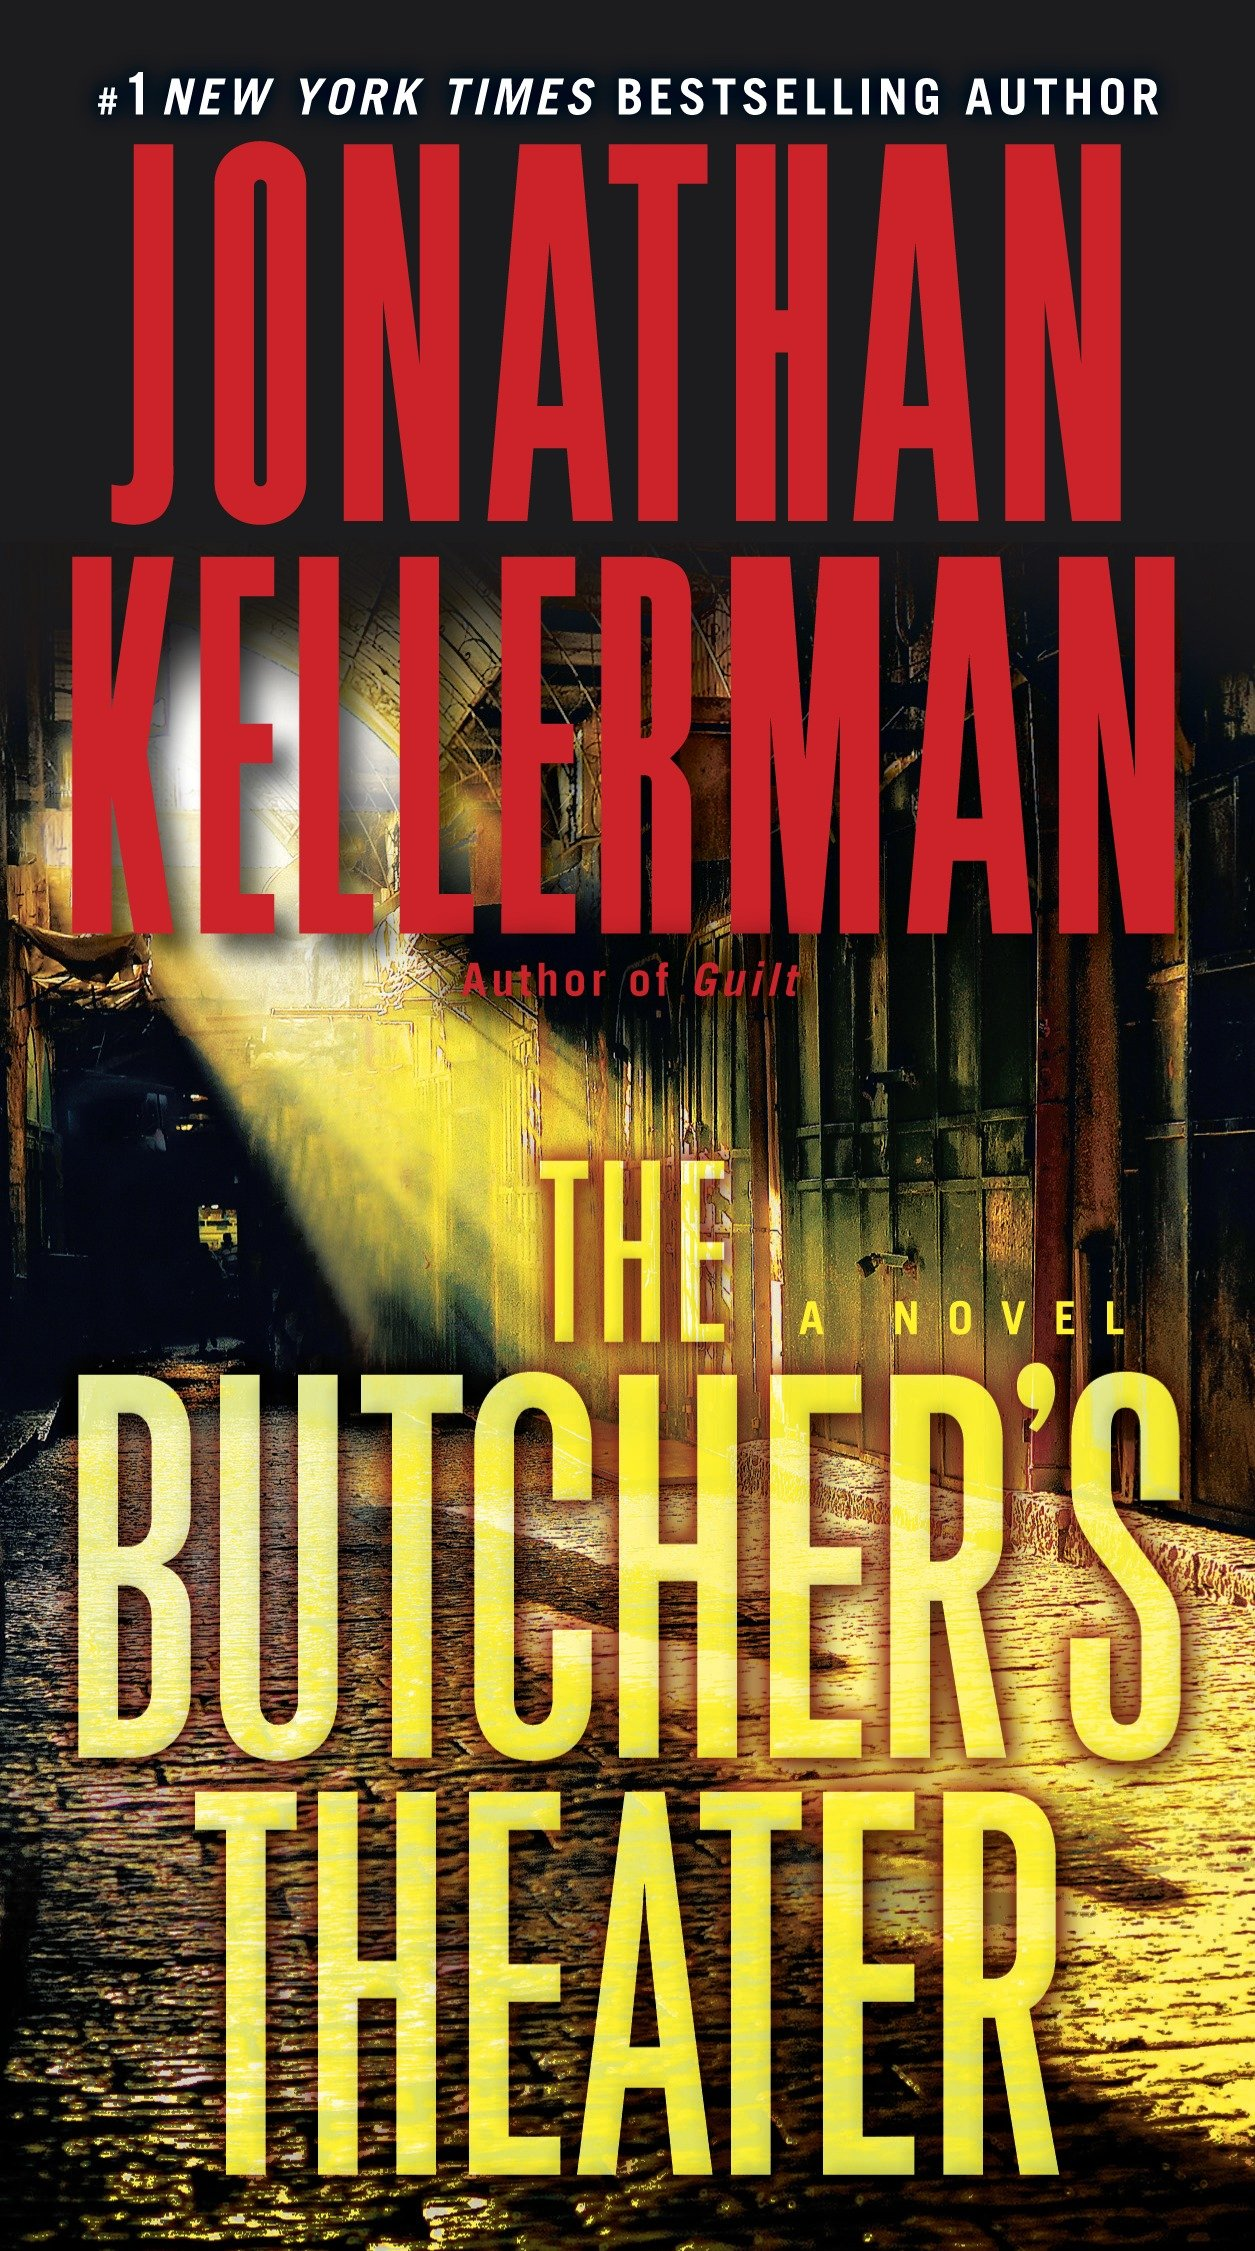 The Butcher's Theater A Novel